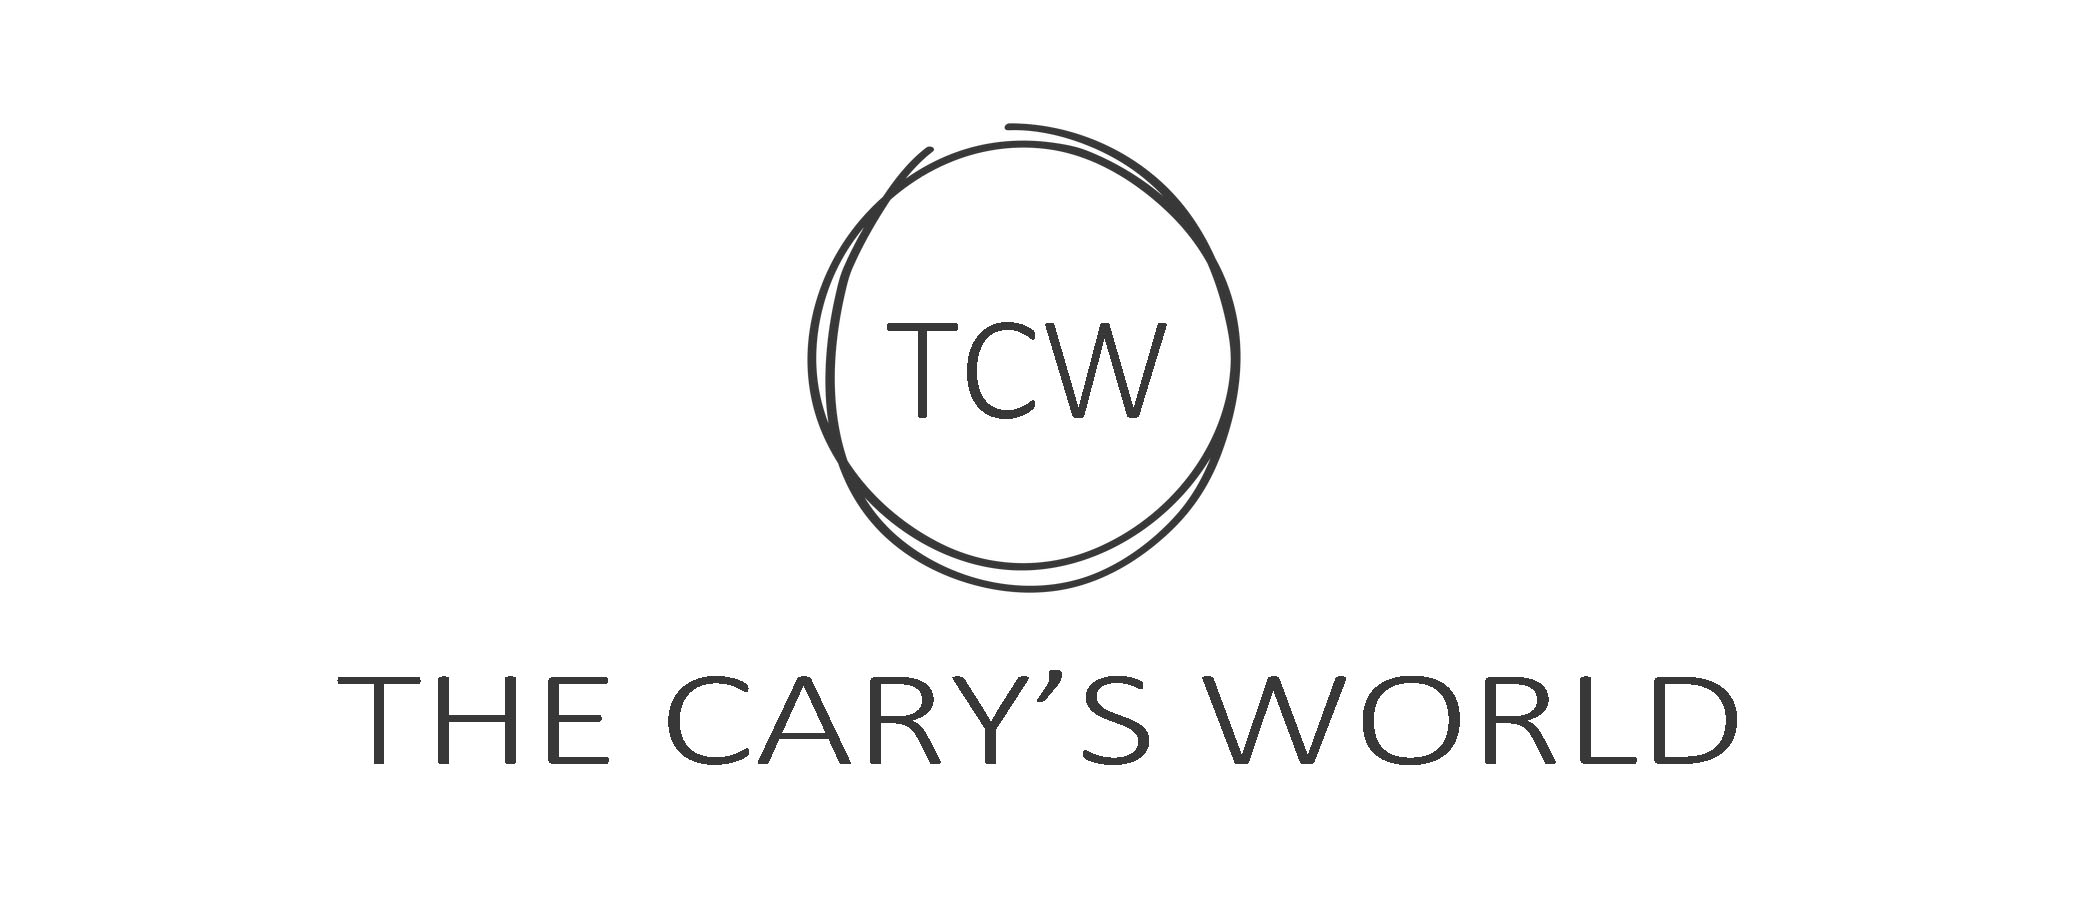 THE CARY'S WORLD